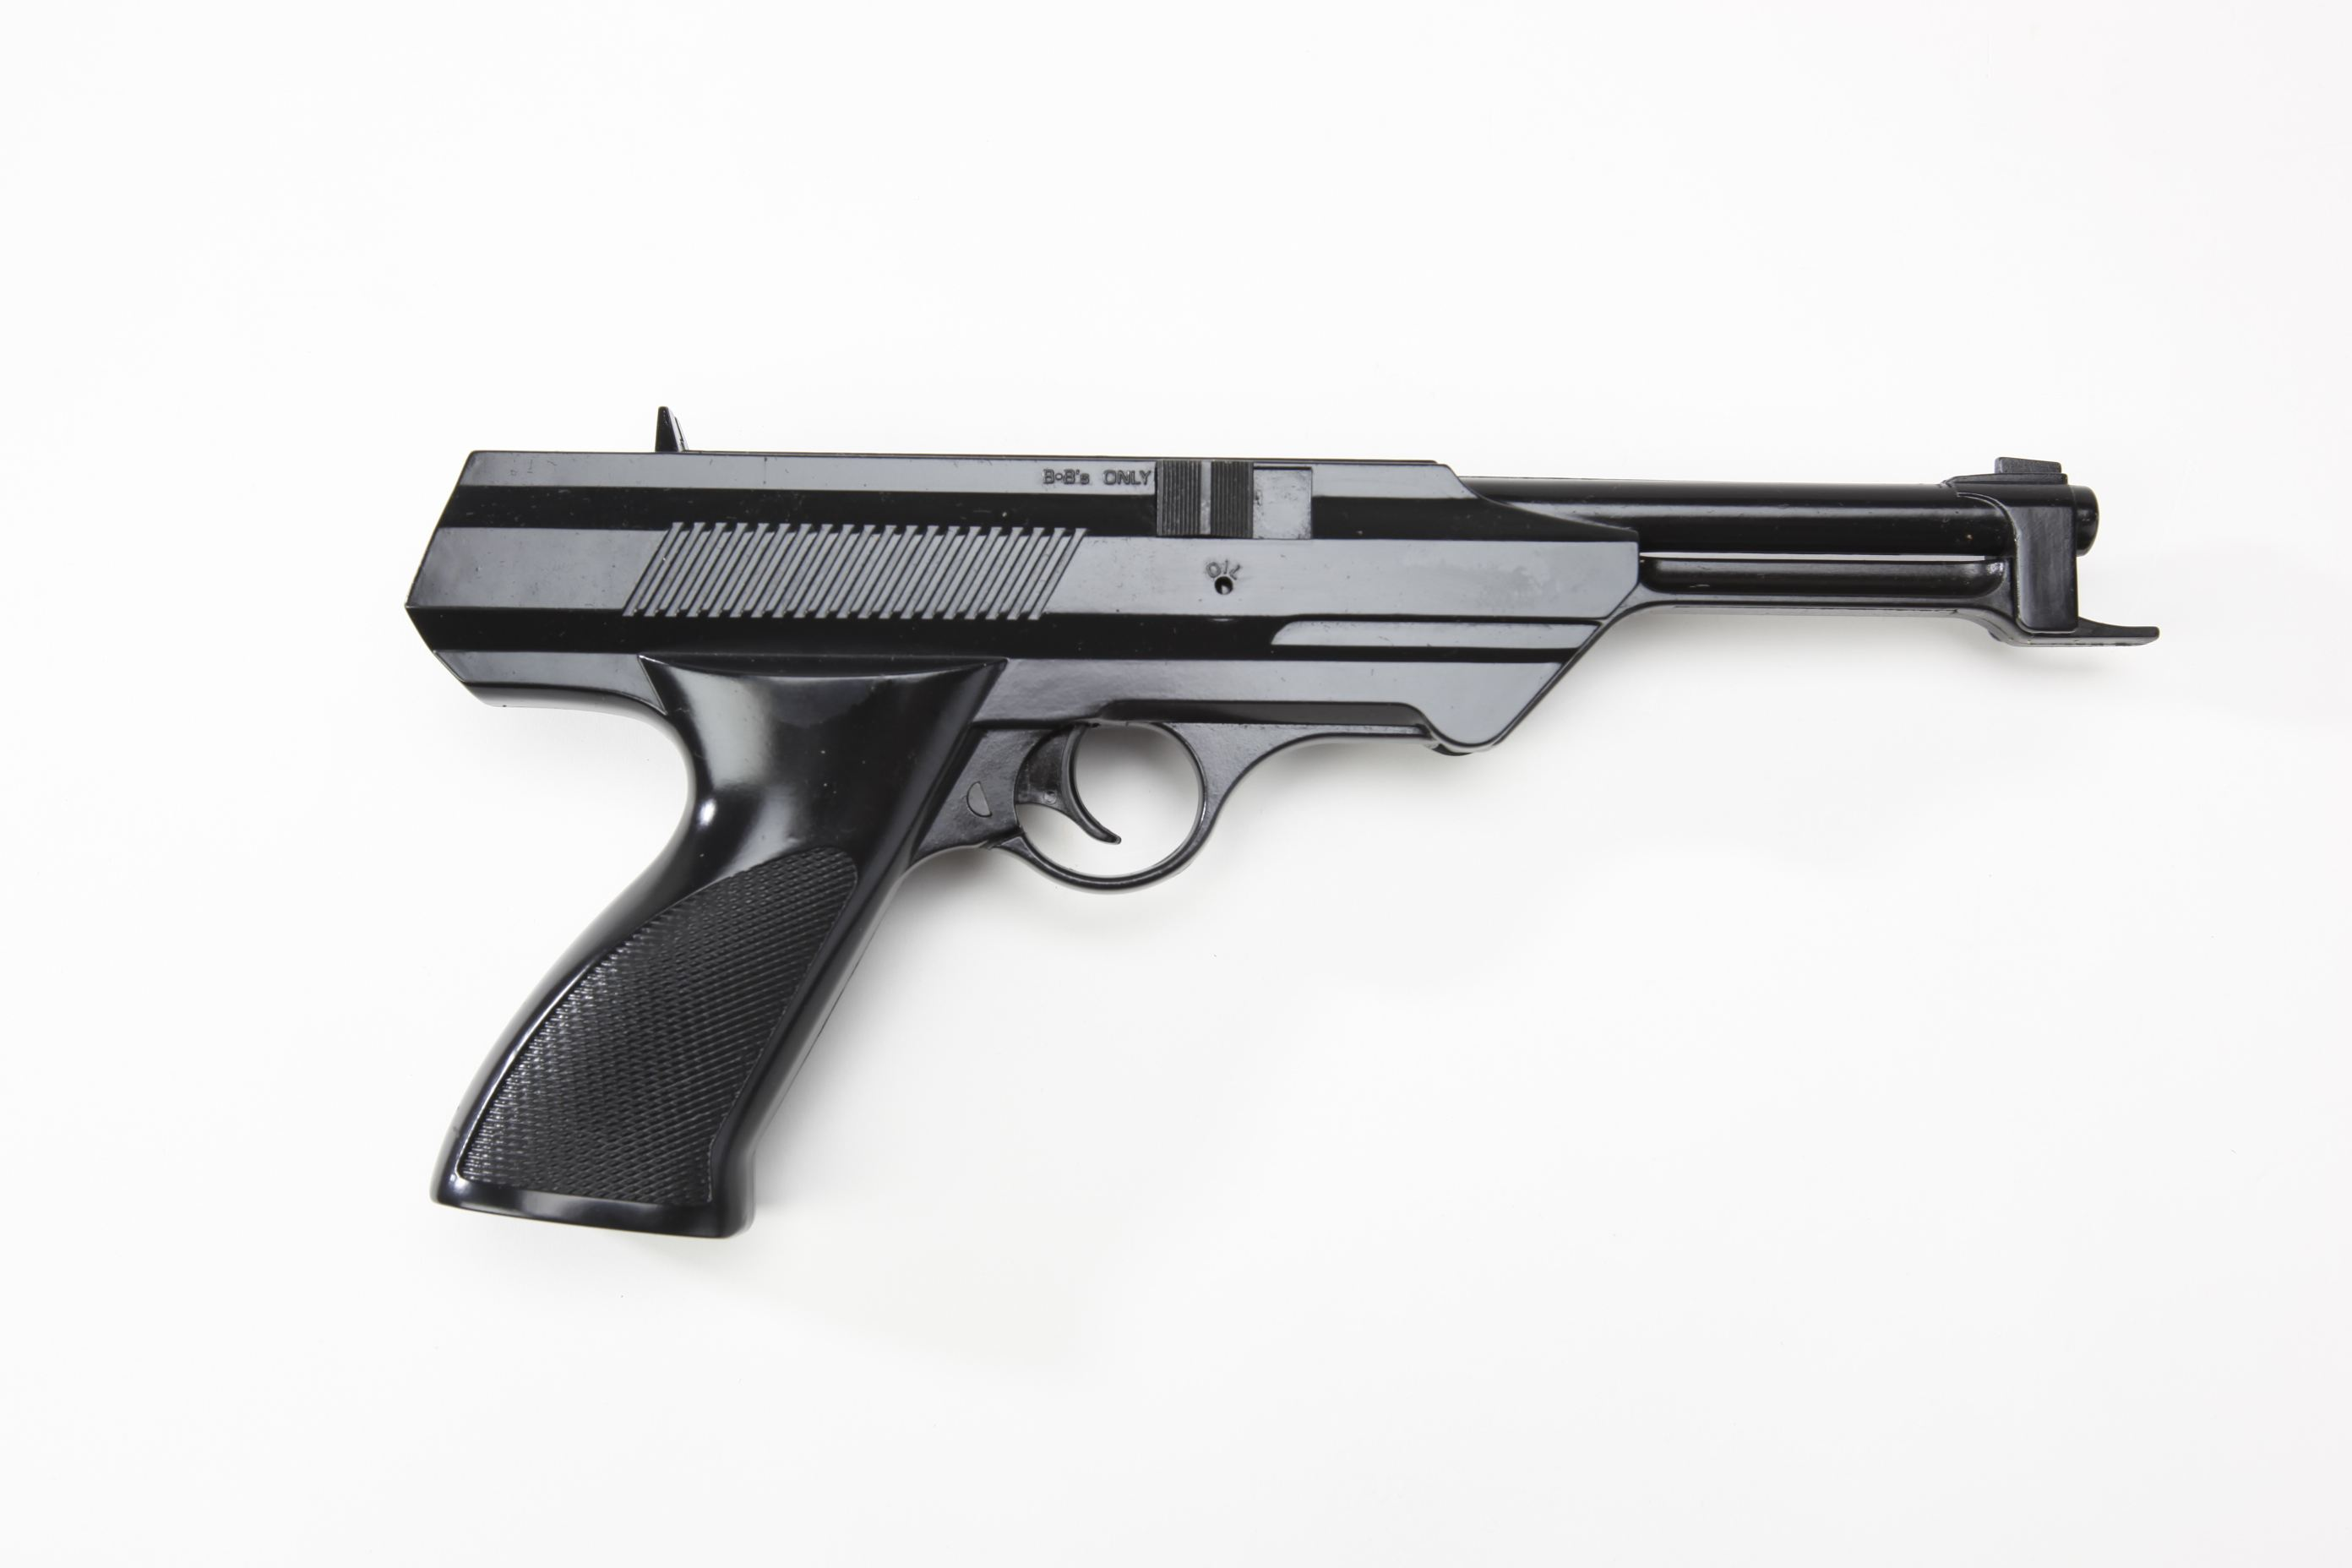 Daisy Model 188 Air Pistol